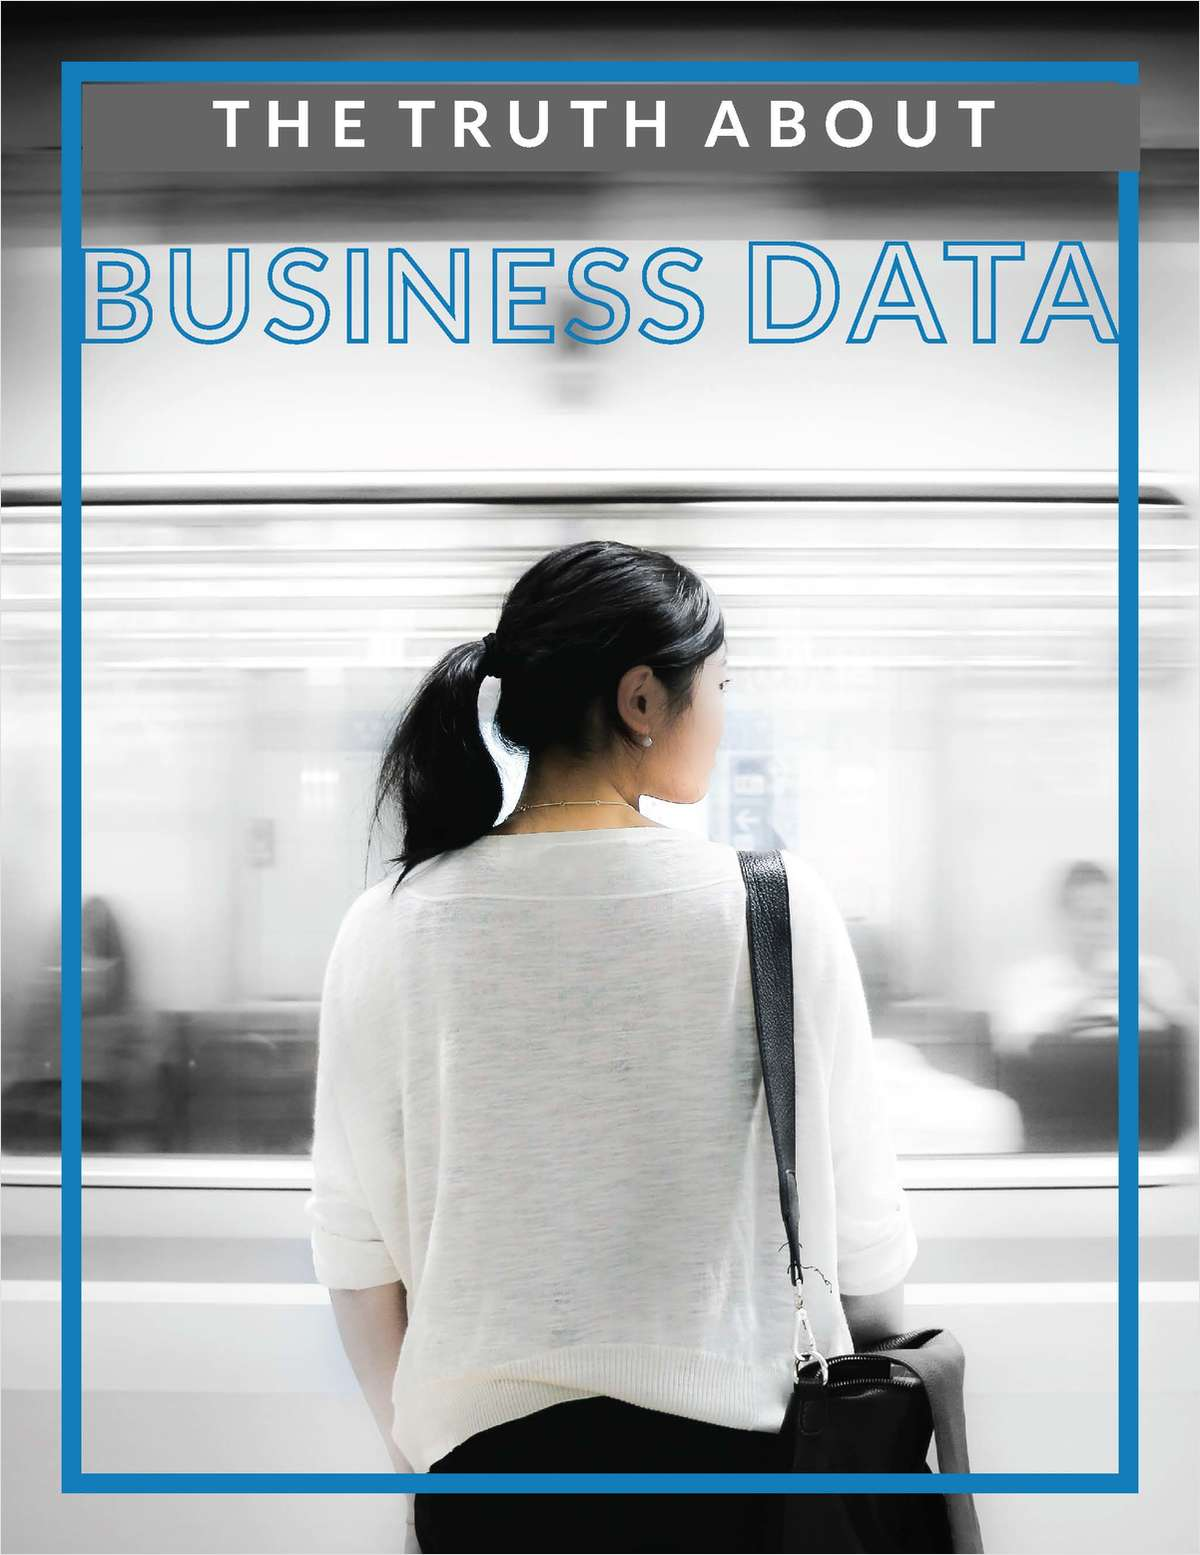 The Truth About Business Data